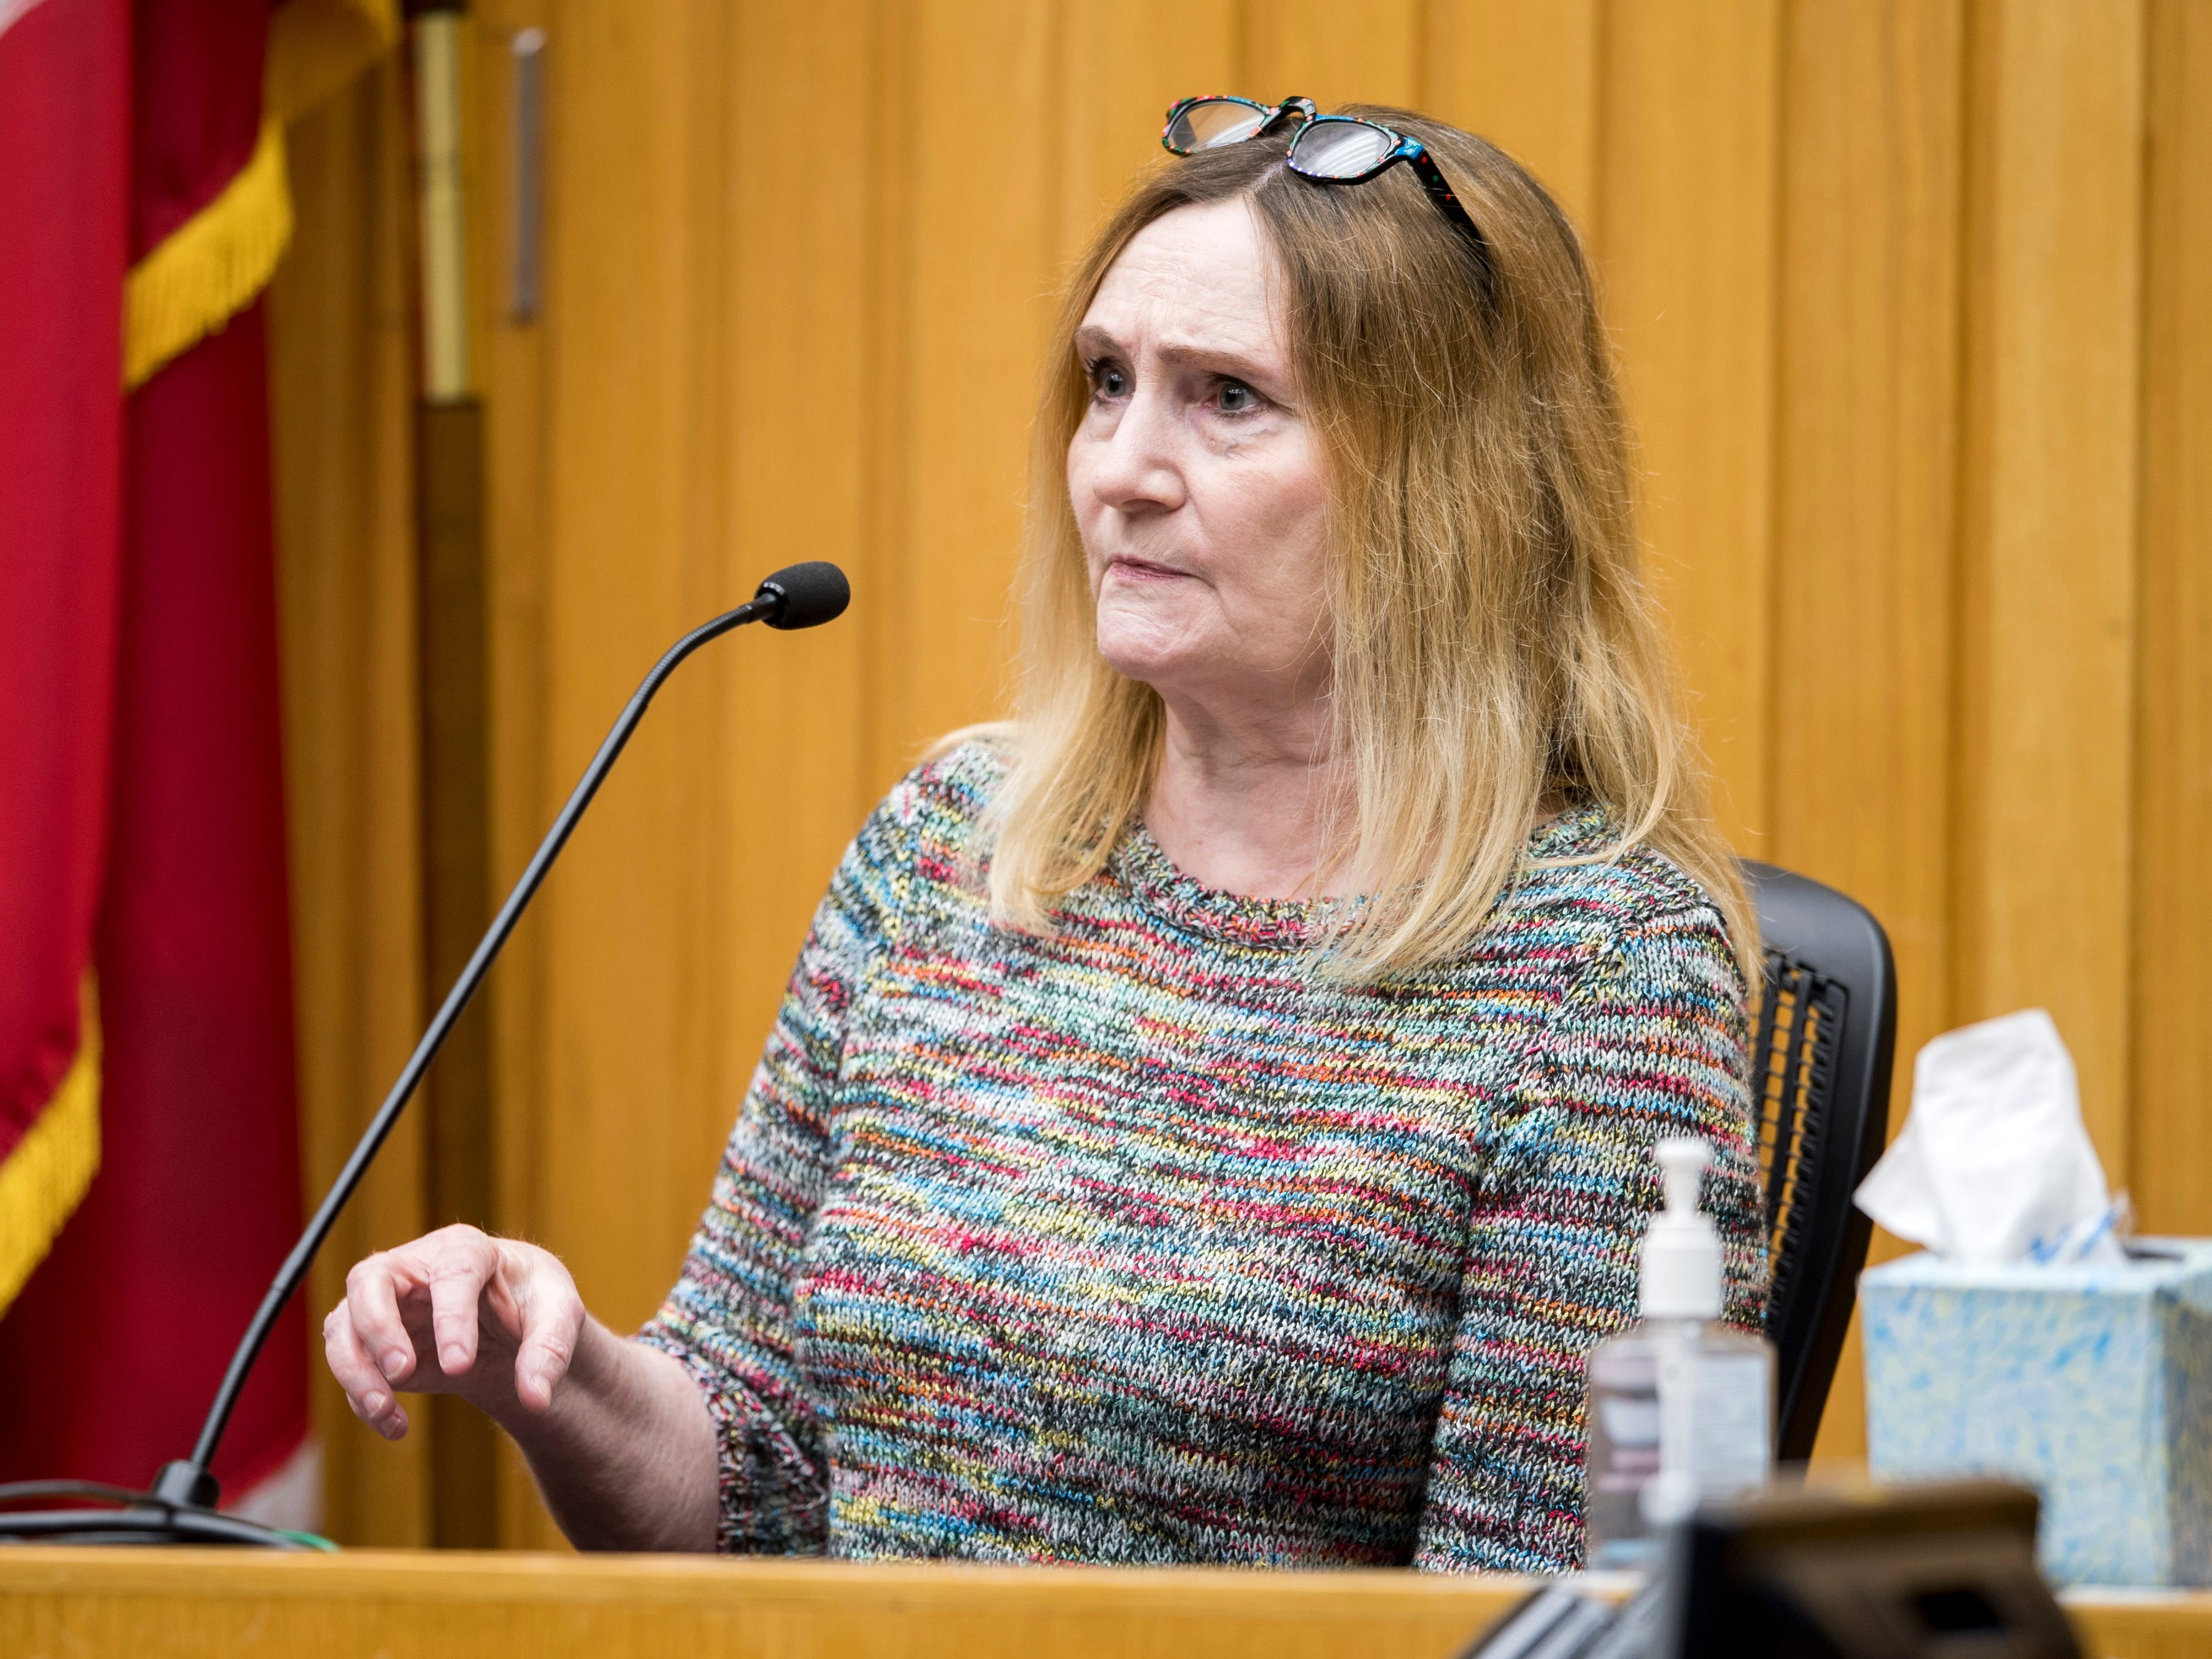 Family counselor Mary Barker on the witness stand during David Lynn Richards' trial in Knox County Criminal Court on Friday, February 8, 2019.